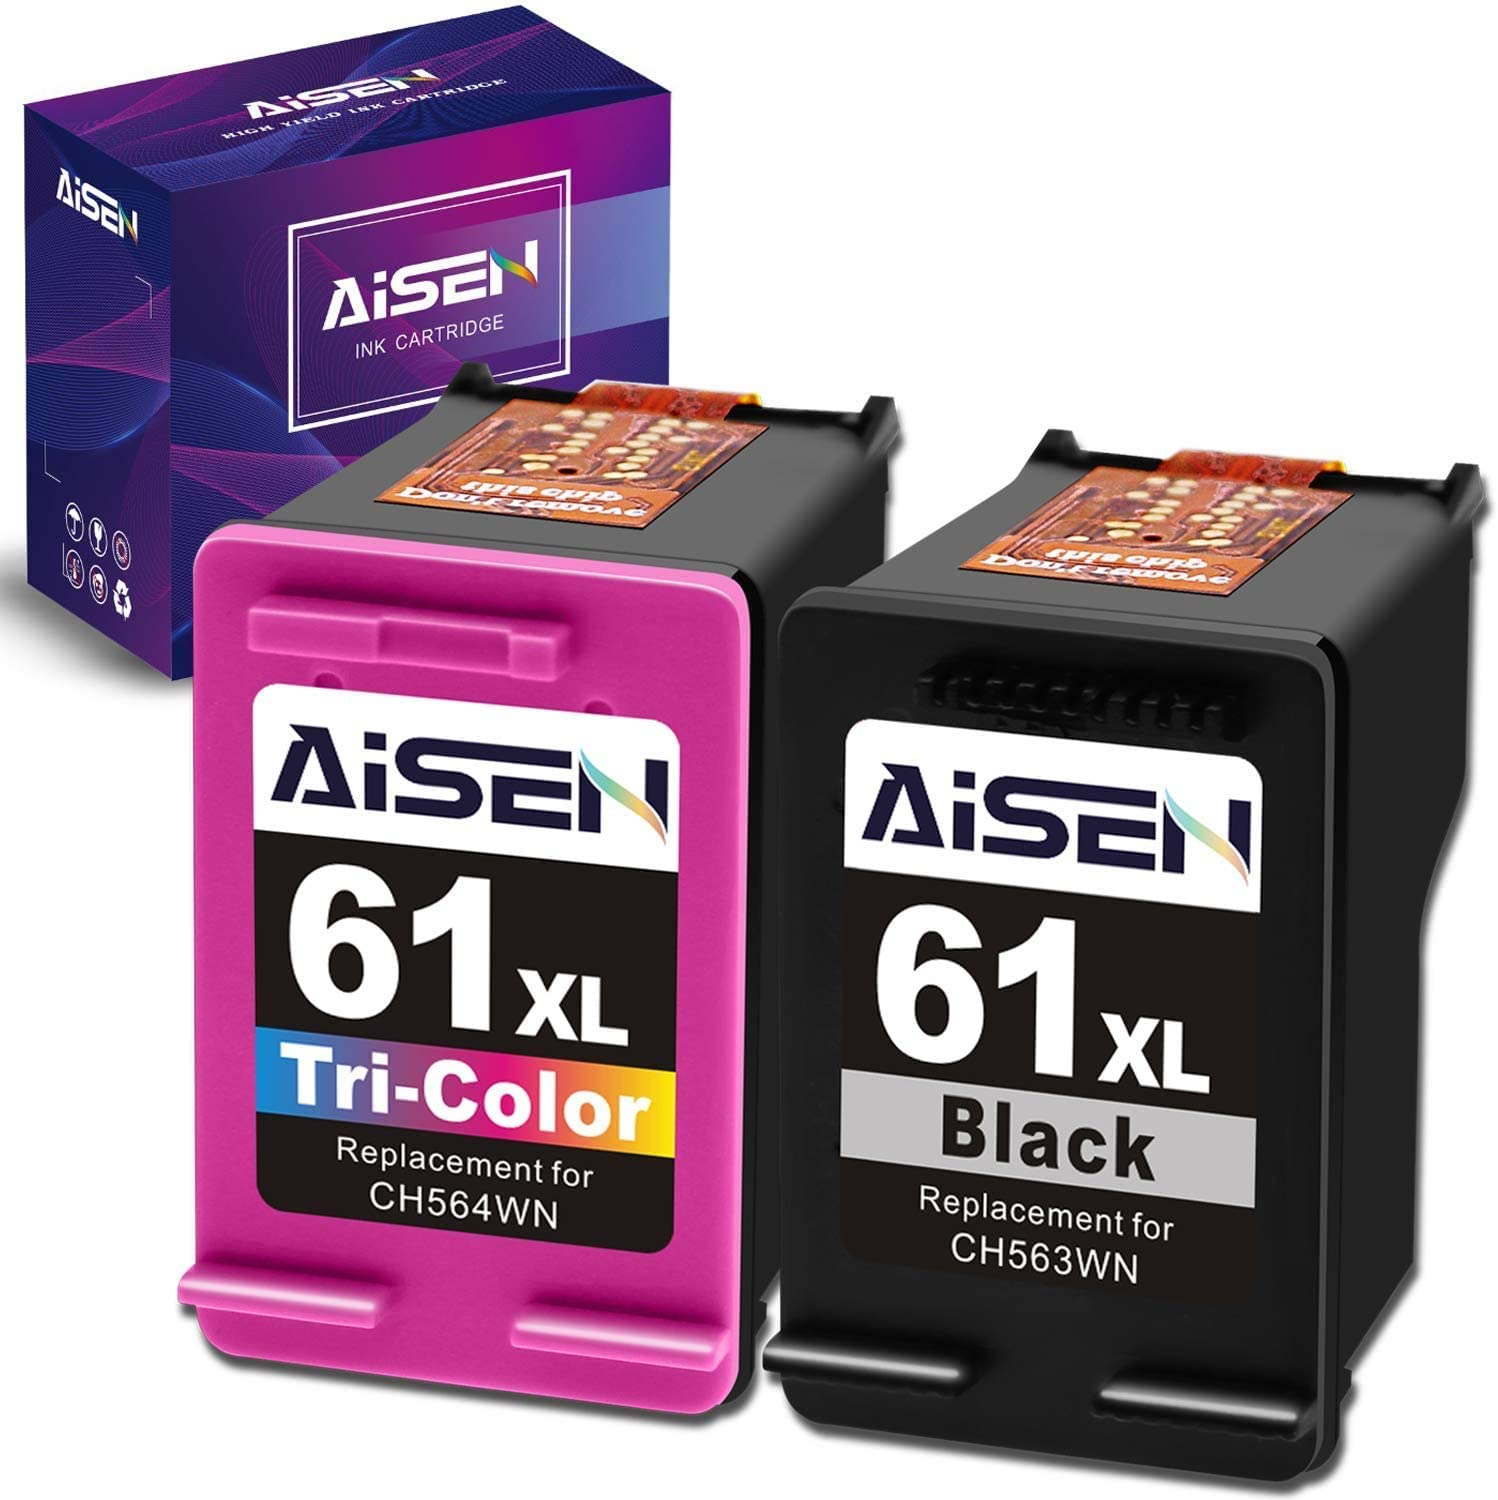 AISEN Remanufactured Ink Cartridge 61 Replacement for HP 61XL 61 XL Used in Envy 4500 5530 5535 Deskjet 1000 1056 1510 1512 1010 1055 2540 2542 3050 3510 3050A Officejet 2620 (1 Black 1 Tri-Color)